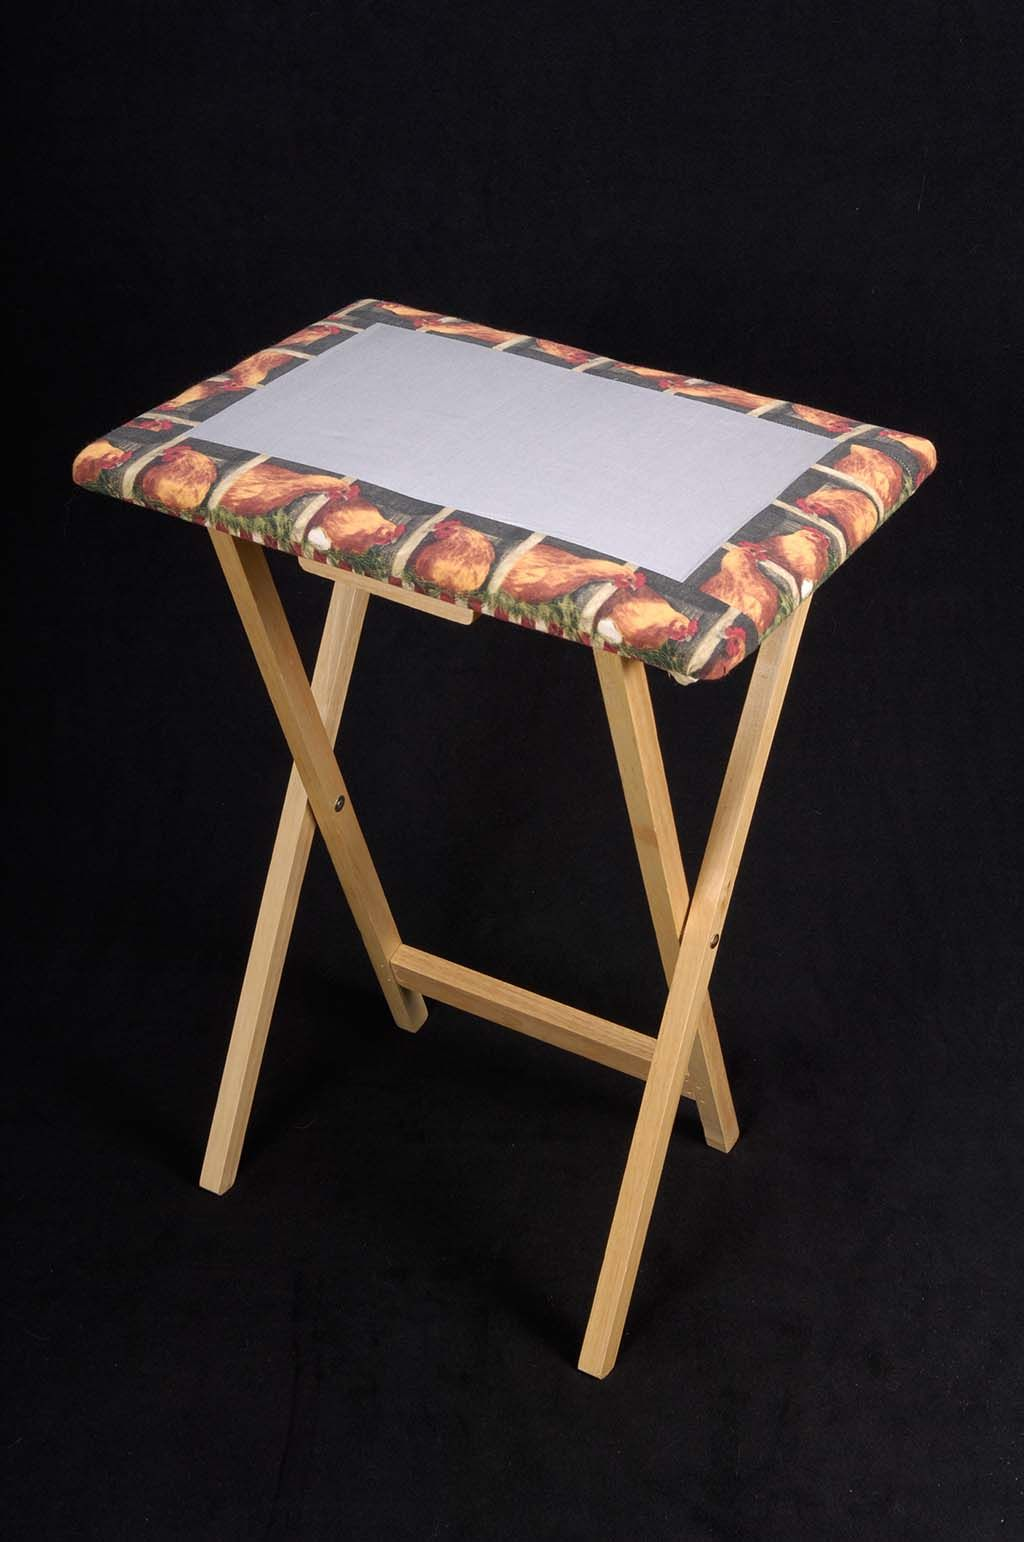 Custom Handmade Portable Ironing Boards For Quilters And Sewers